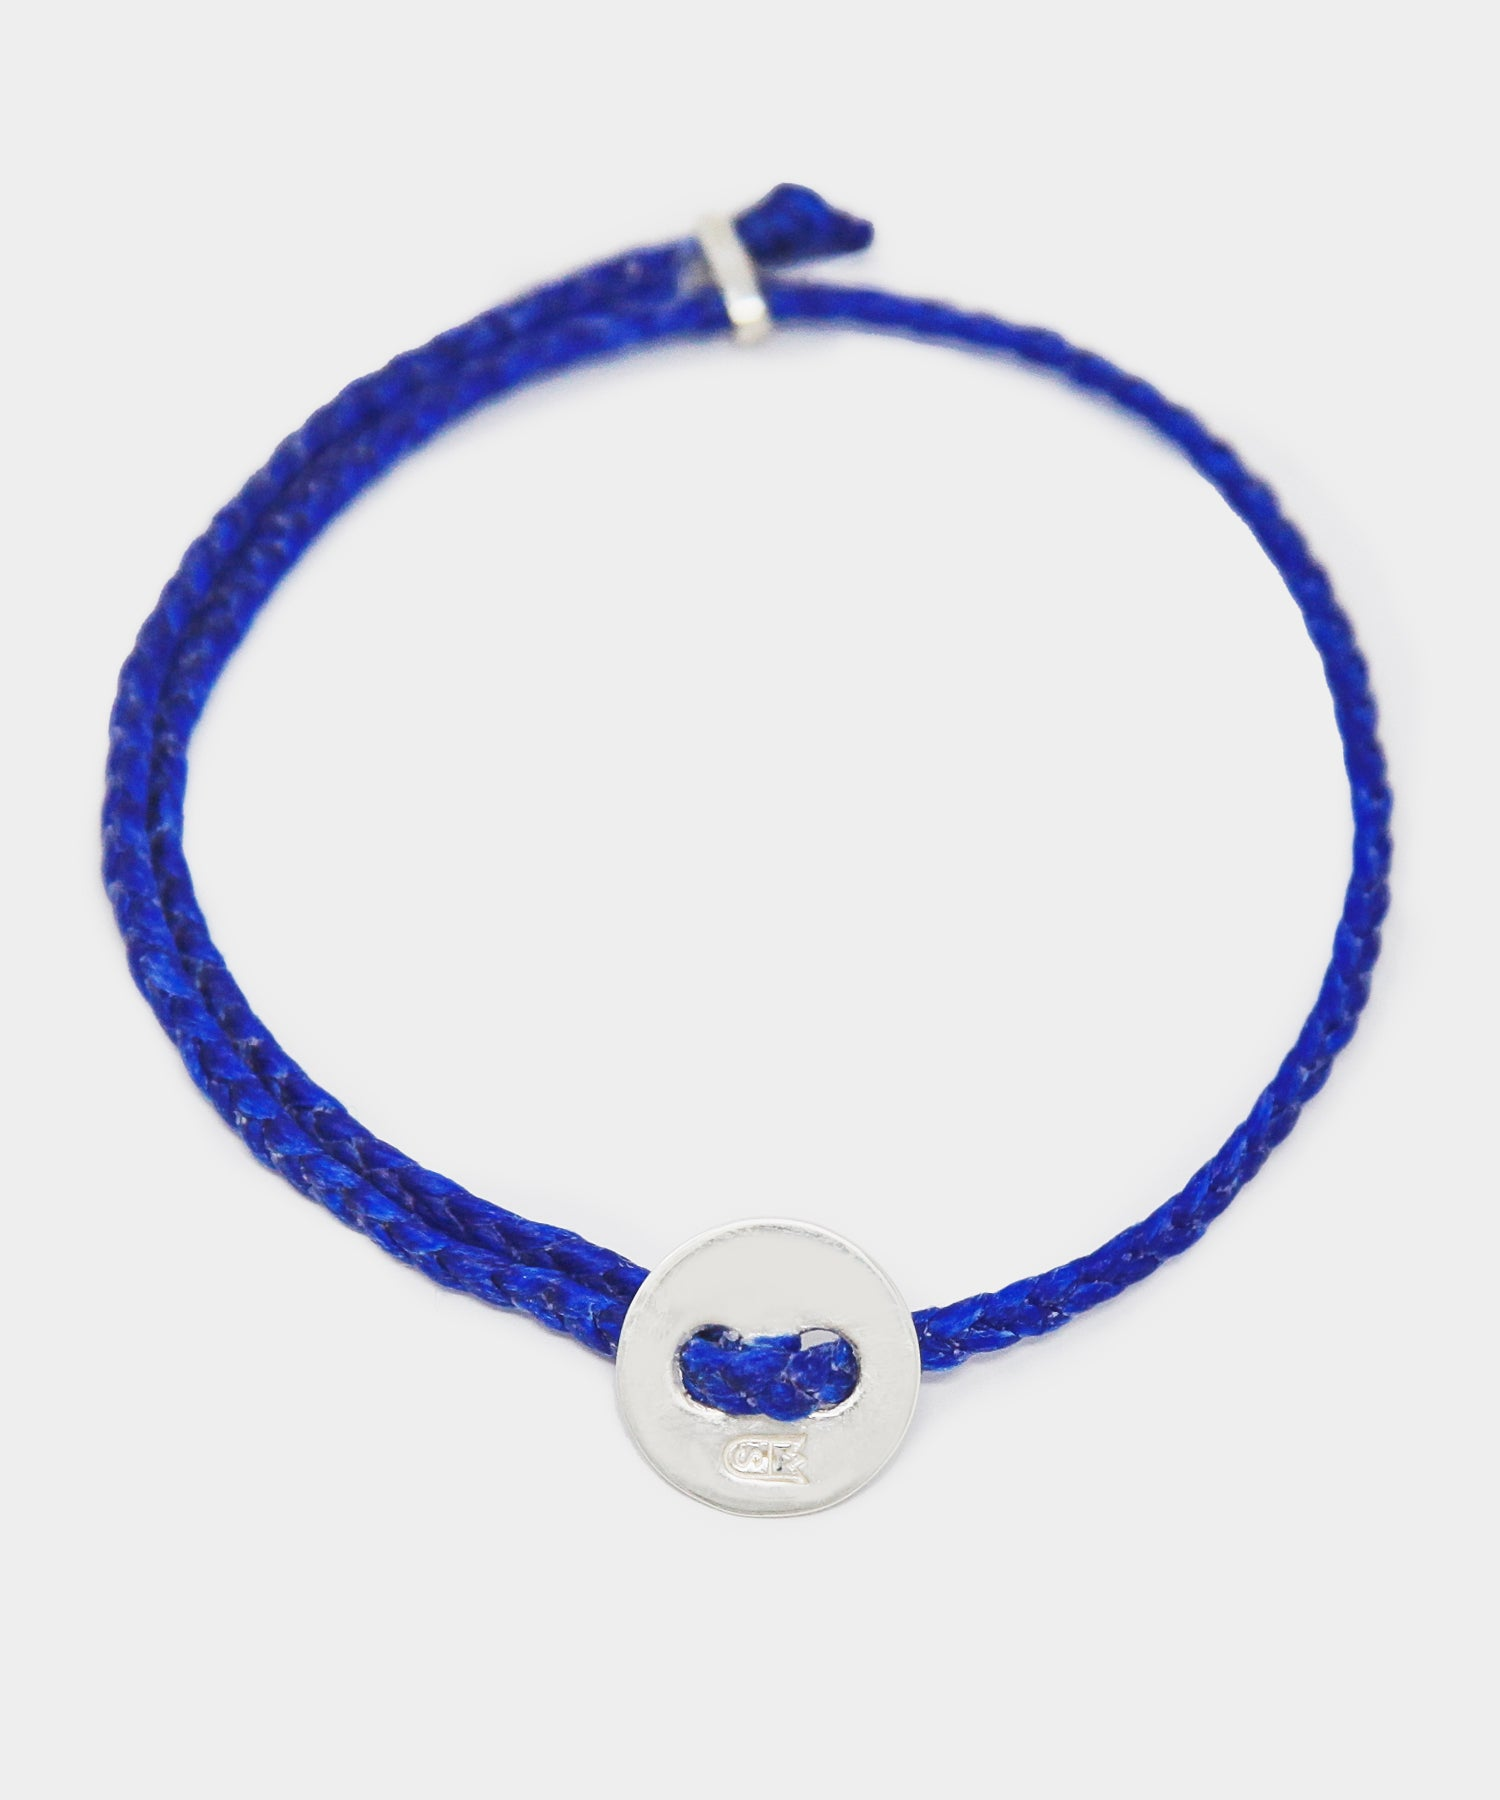 Scosha Signature 4MM Bracelet in Royal Blue